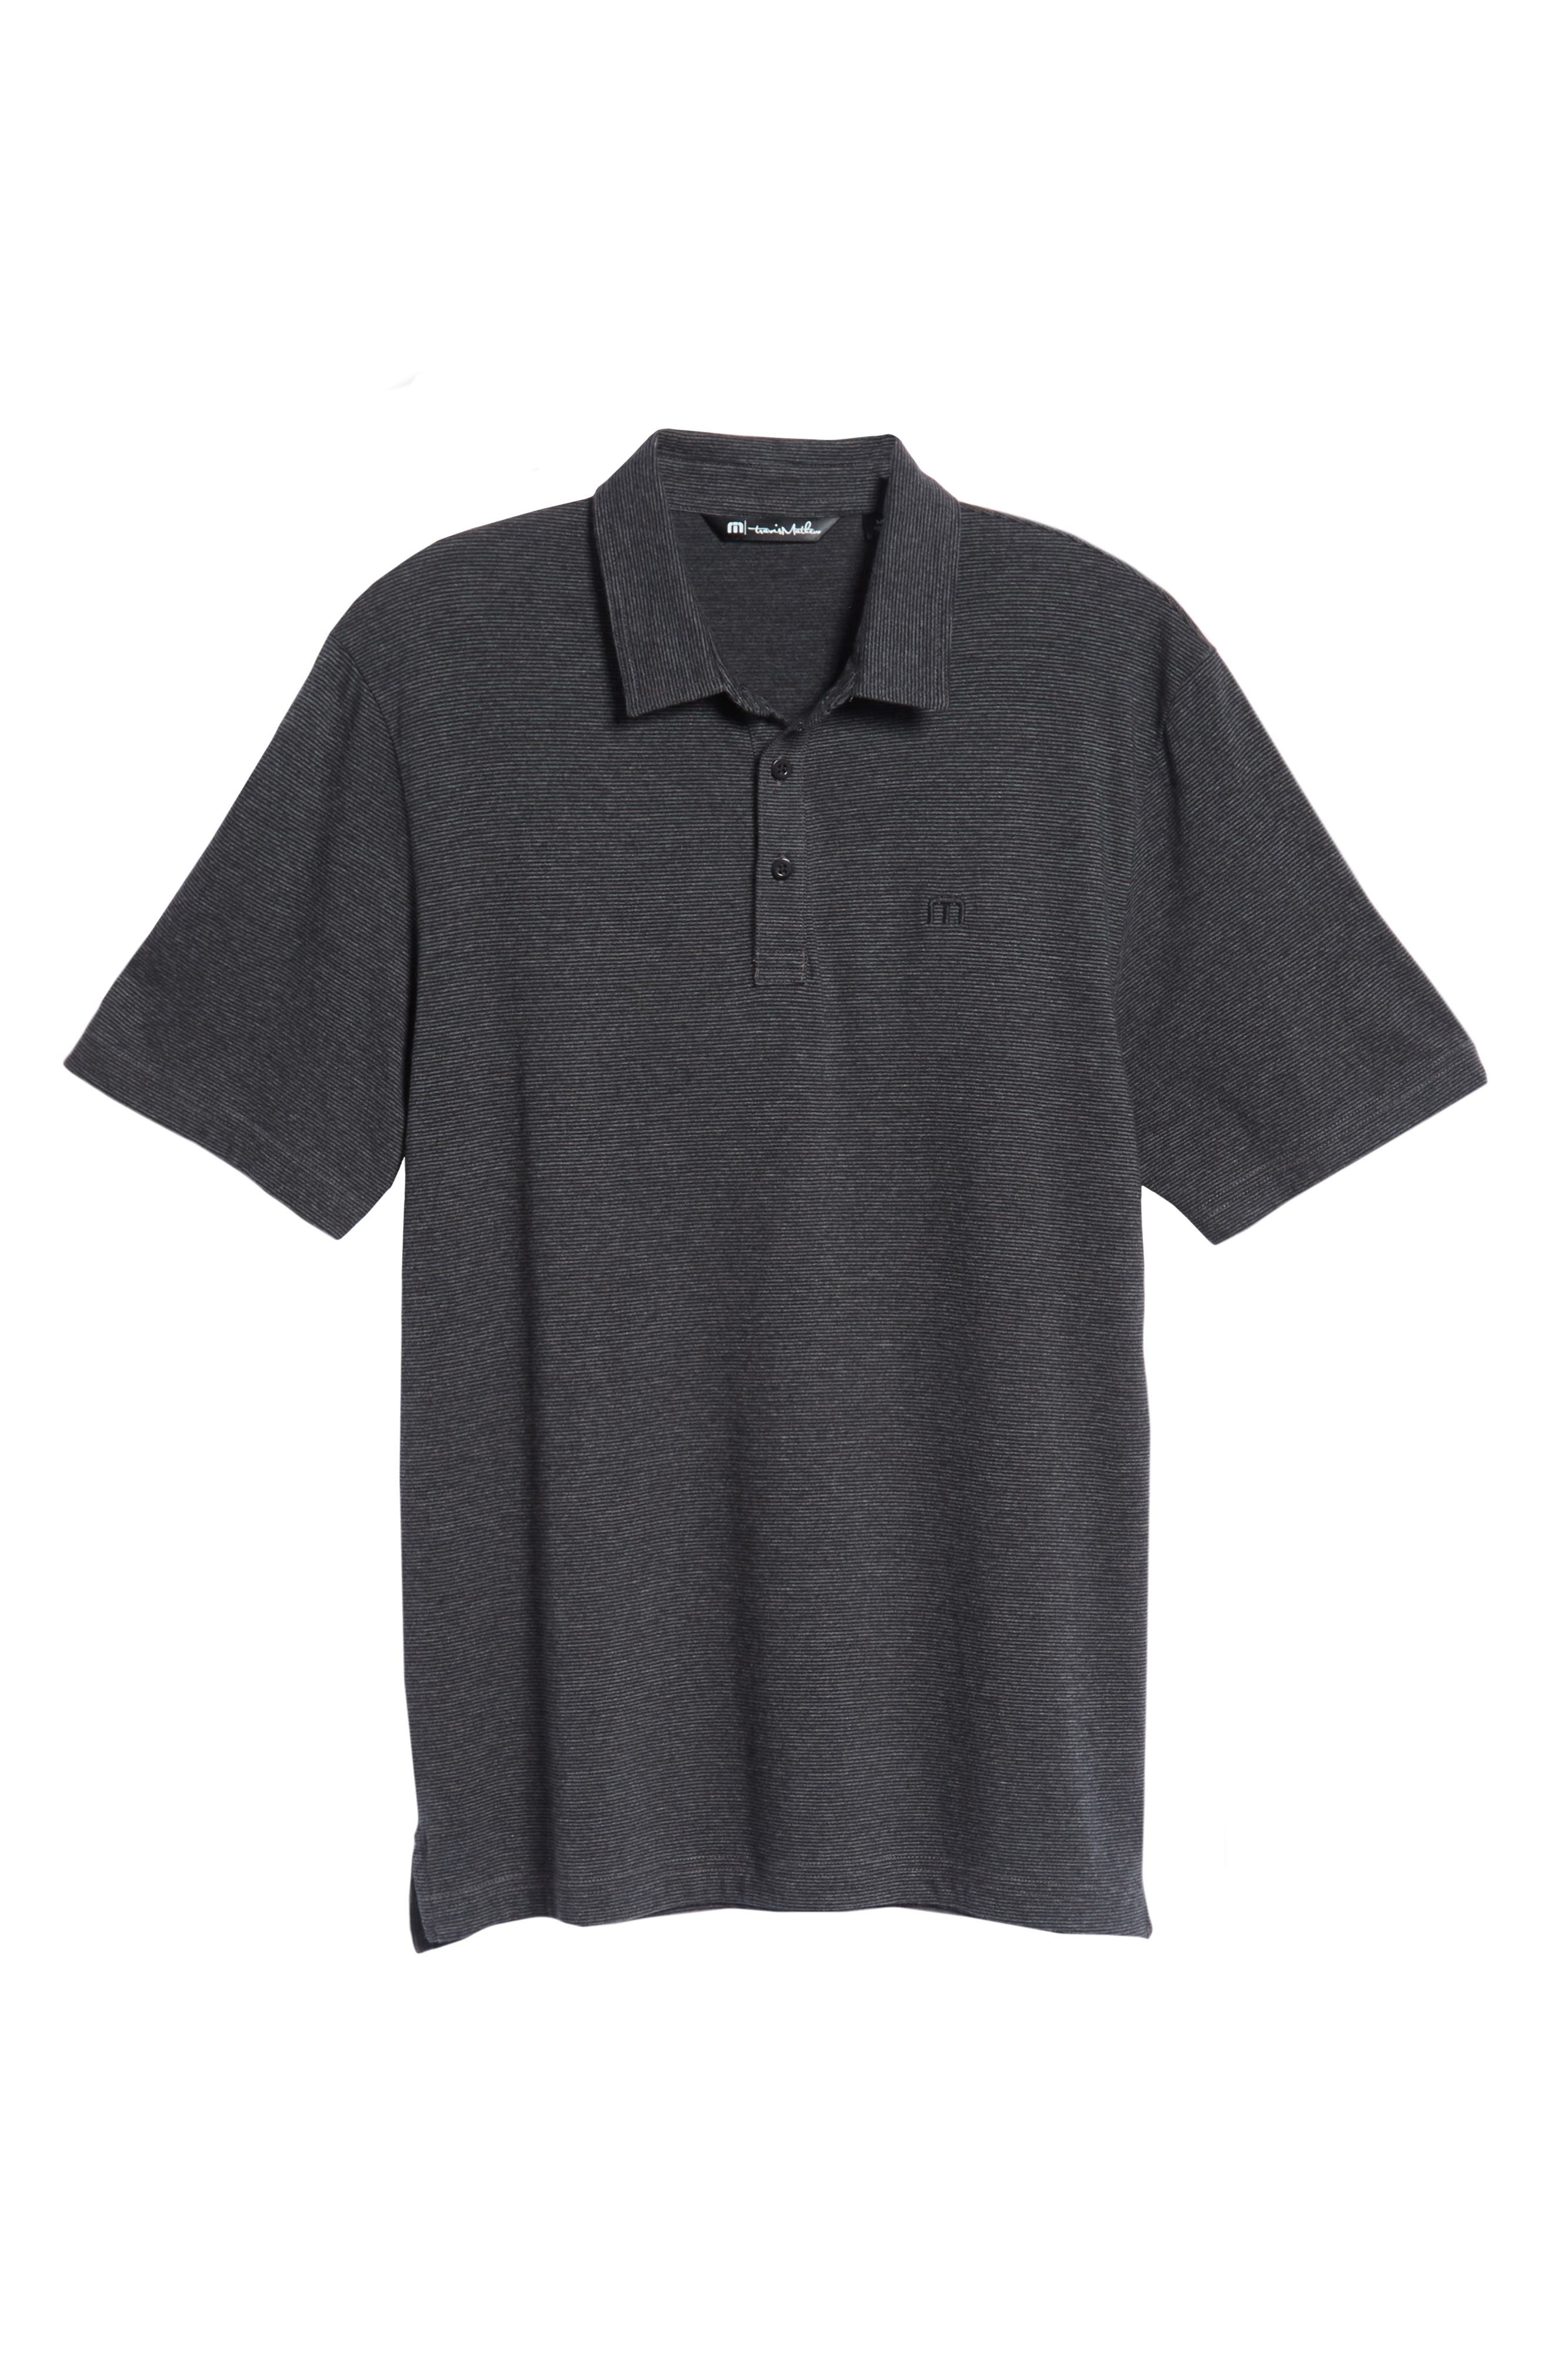 TRAVIS MATHEW,                             JQ Regular Fit Stripe Polo,                             Alternate thumbnail 6, color,                             020